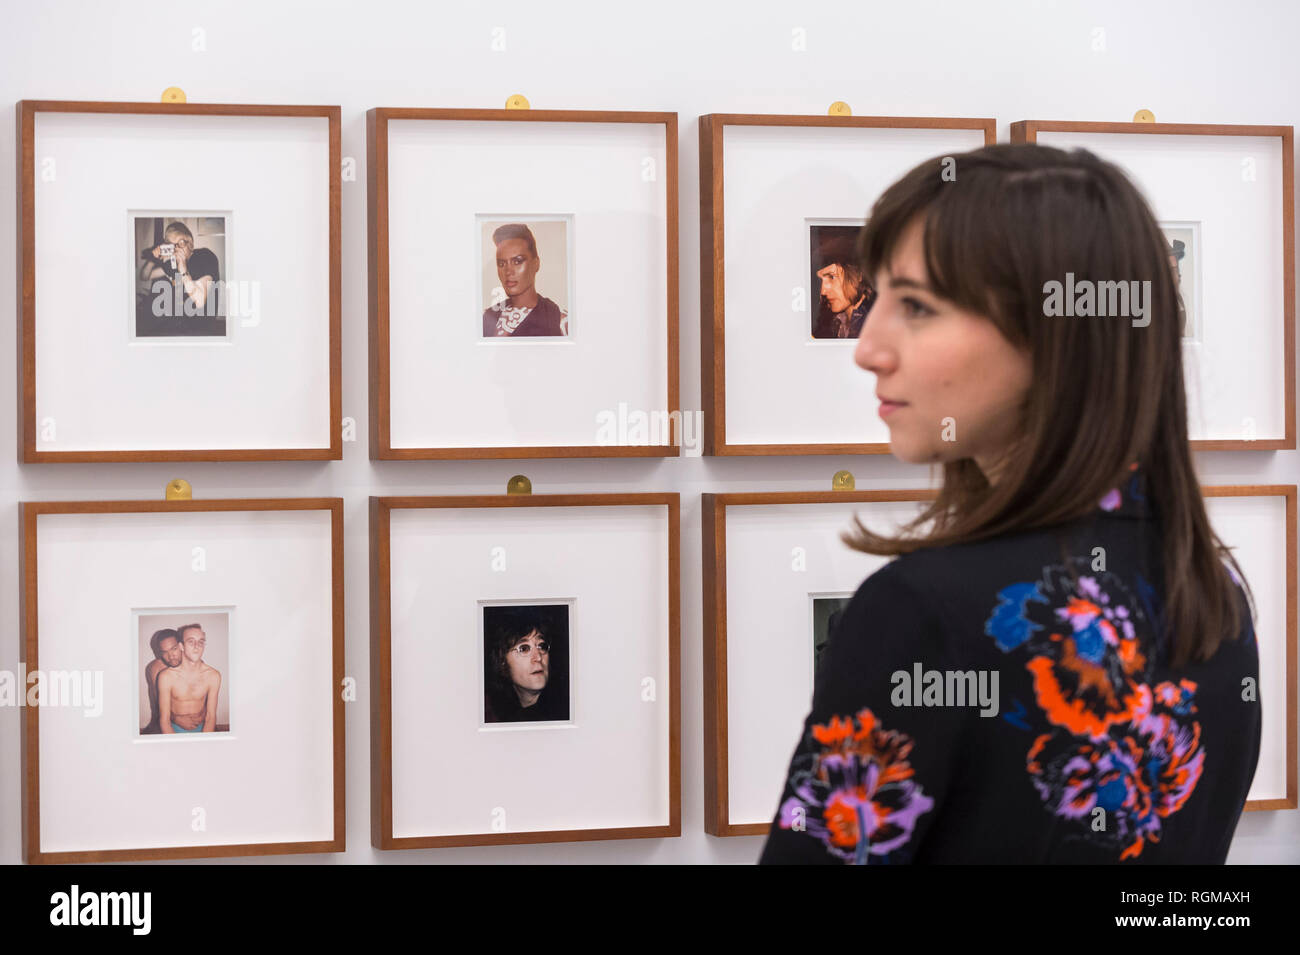 London, UK.  30 January 2019. A staff member views a series of portraits by Andy Warhol, including 'David Hockney' (1972), 'Grace Jones' (1974), 'Dennis Hopper' (1972), 'Keith Haring and Juan Dubose' (1983) and John Lennon (1971). Preview of 'Andy Warhol Polaroid Pictures', an exhibition of over 60 portrait and self-portrait Polaroid photographs by Andy Warhol.  The works, which depict artists, actors, politicians and friends of his Factory entourage in New York during the 1970s and 80s, are on display 2 February to 13 April 2019 at Bastian Gallery in Mayfair.  Credit: Stephen Chung / Alamy Li - Stock Image